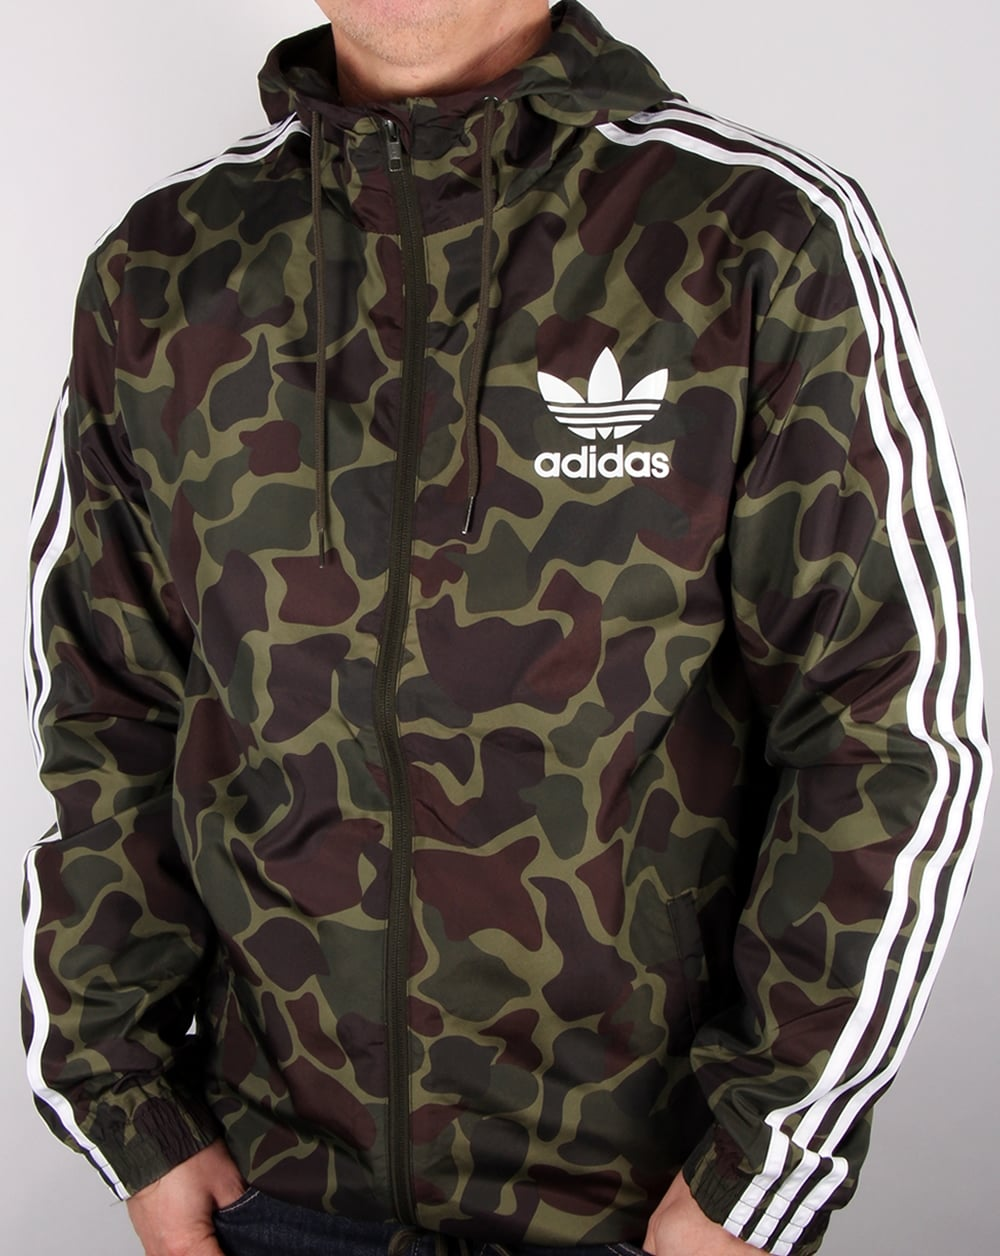 7000778bc43bd6 Adidas Originals Camo Windbreaker Camo, Men's, Jacket, Weather proof